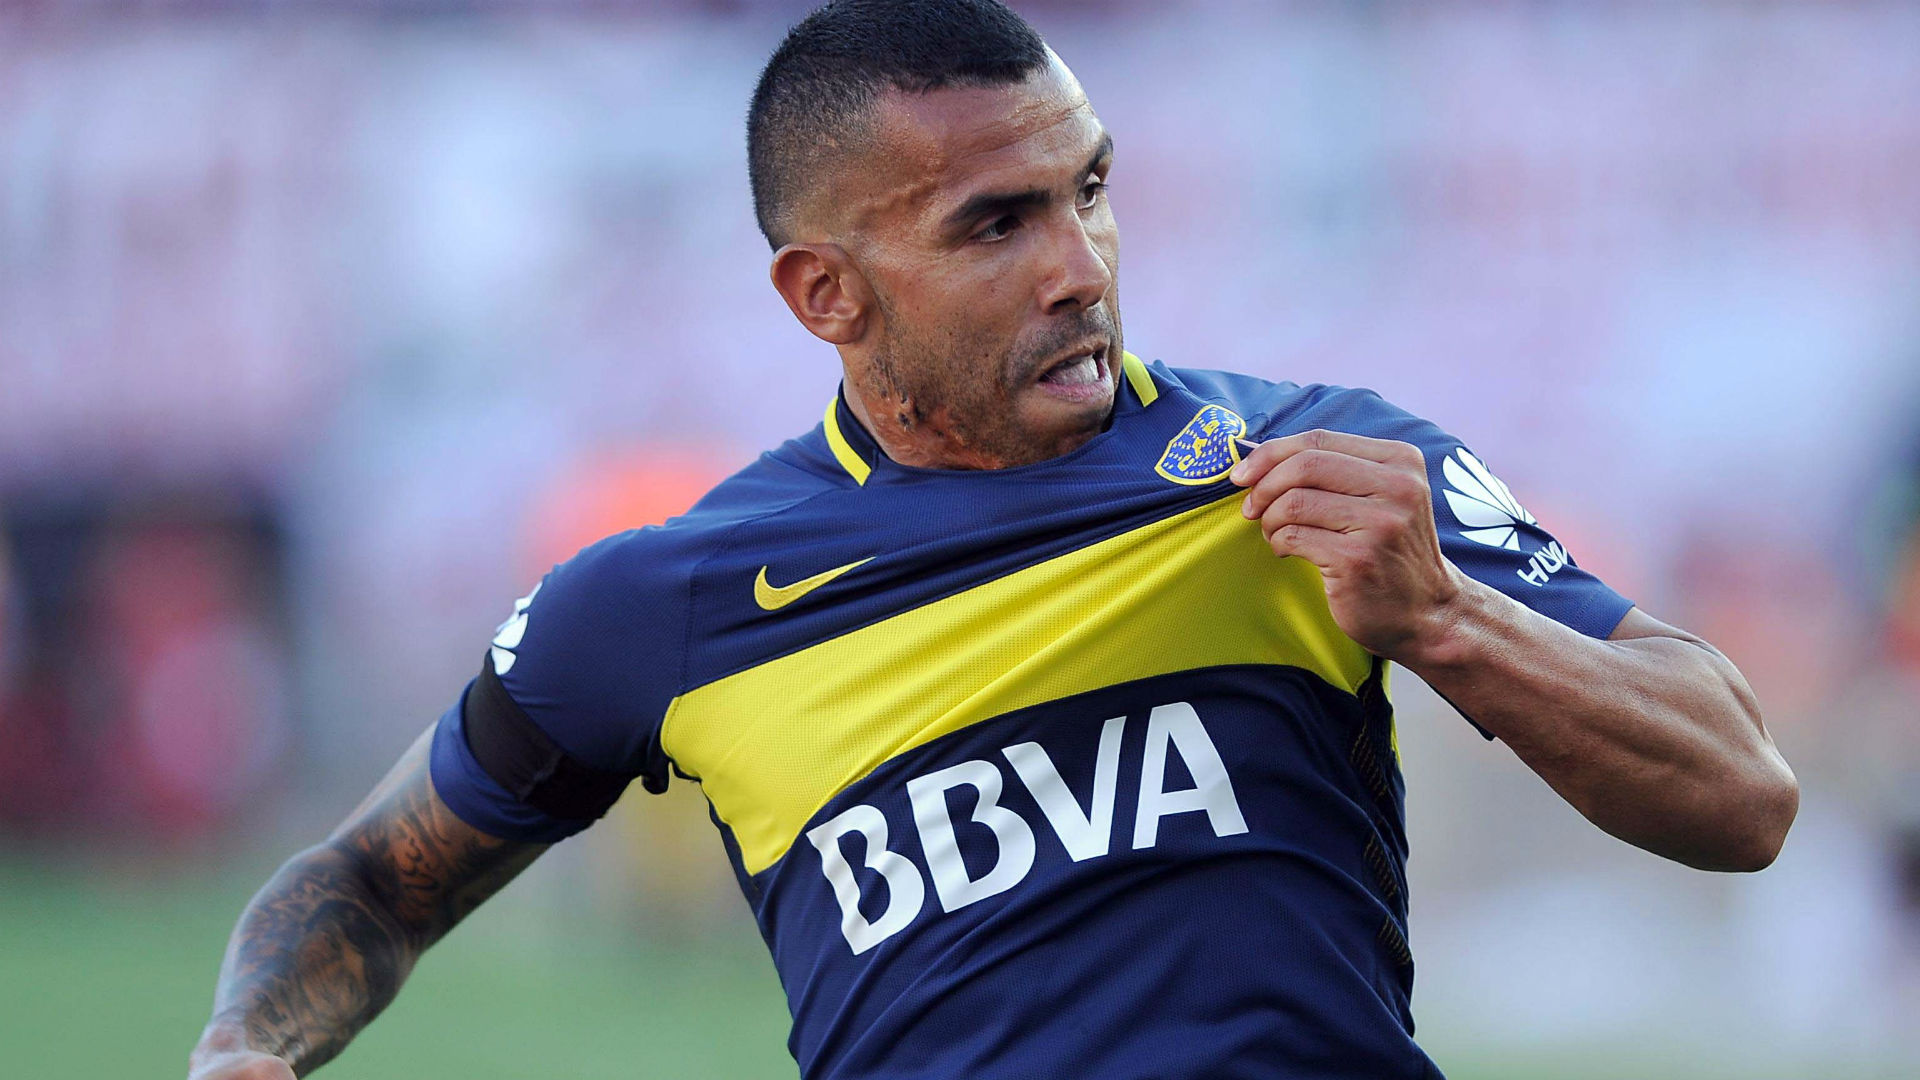 I cannot imagine leaving Boca Juniors Carlos Tevez